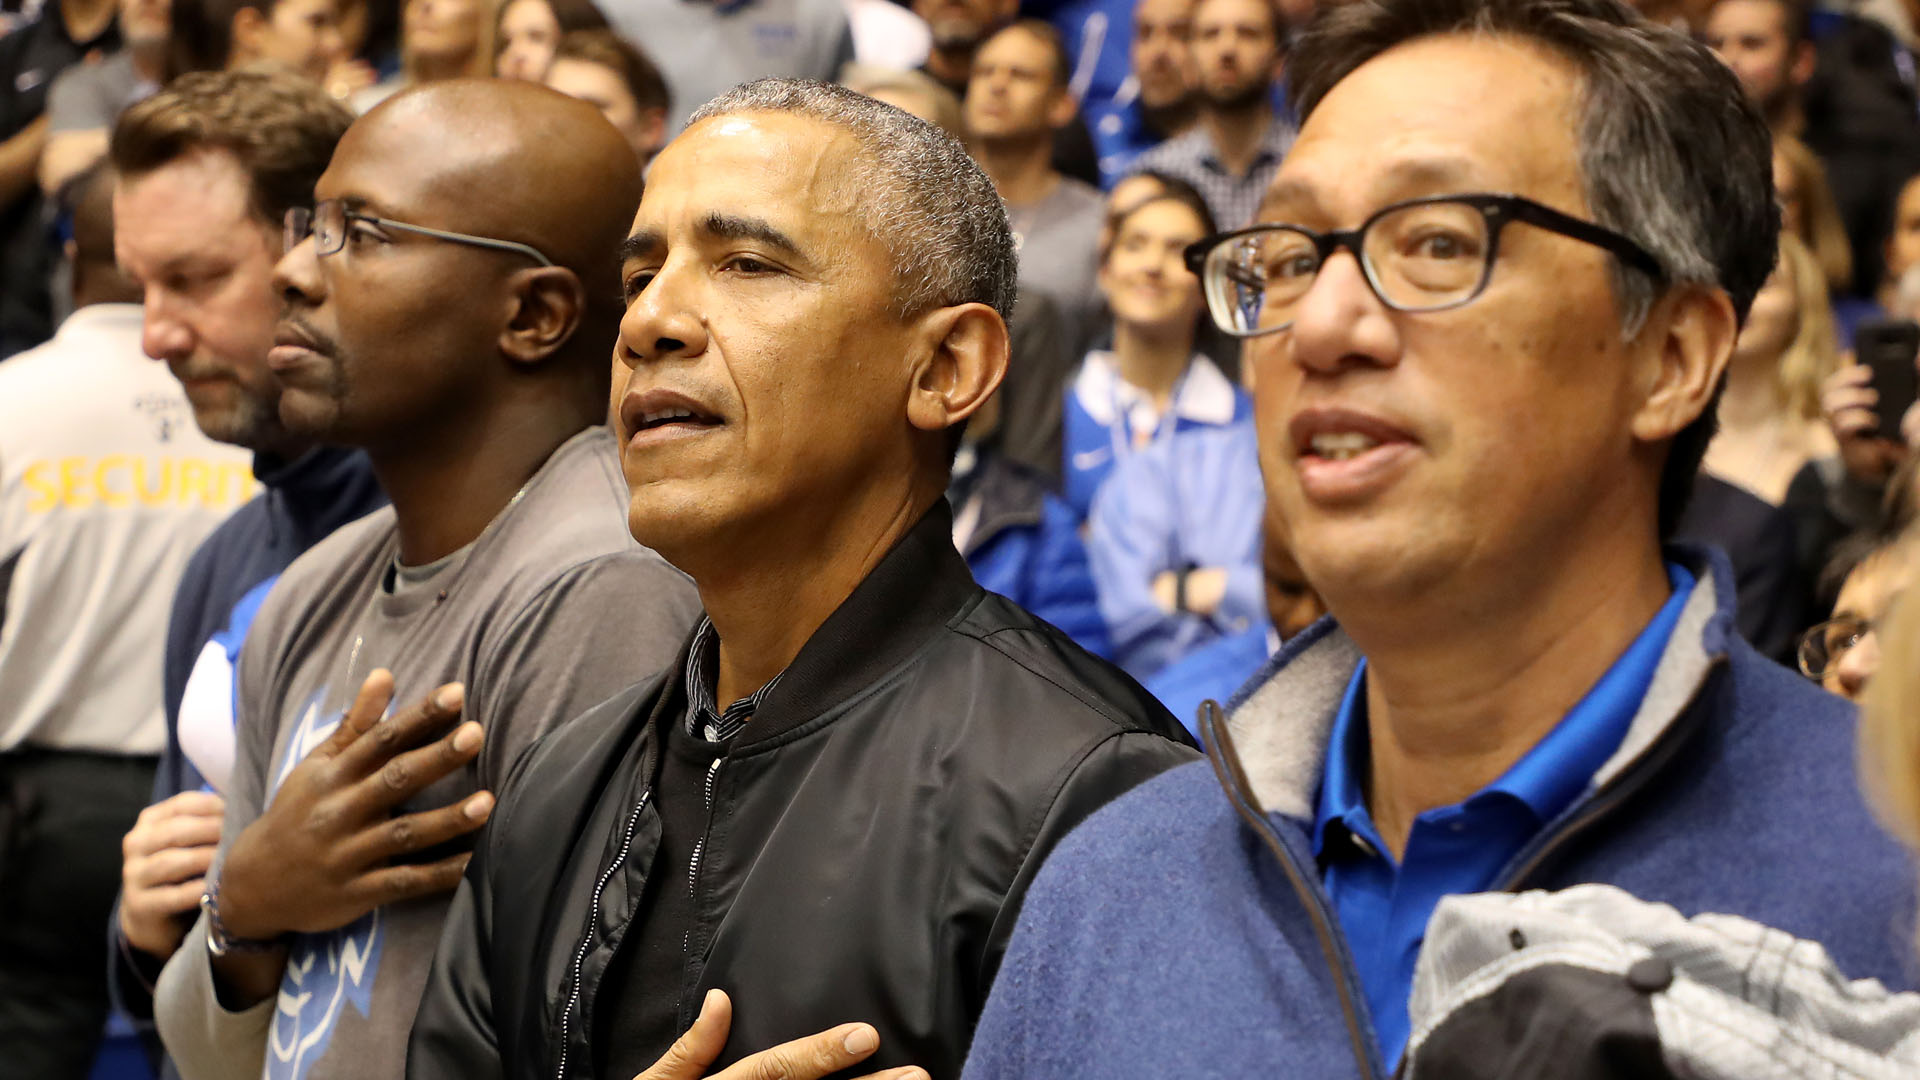 Former President Barack Obama wishes Zion Williamson a 'speedy recovery'